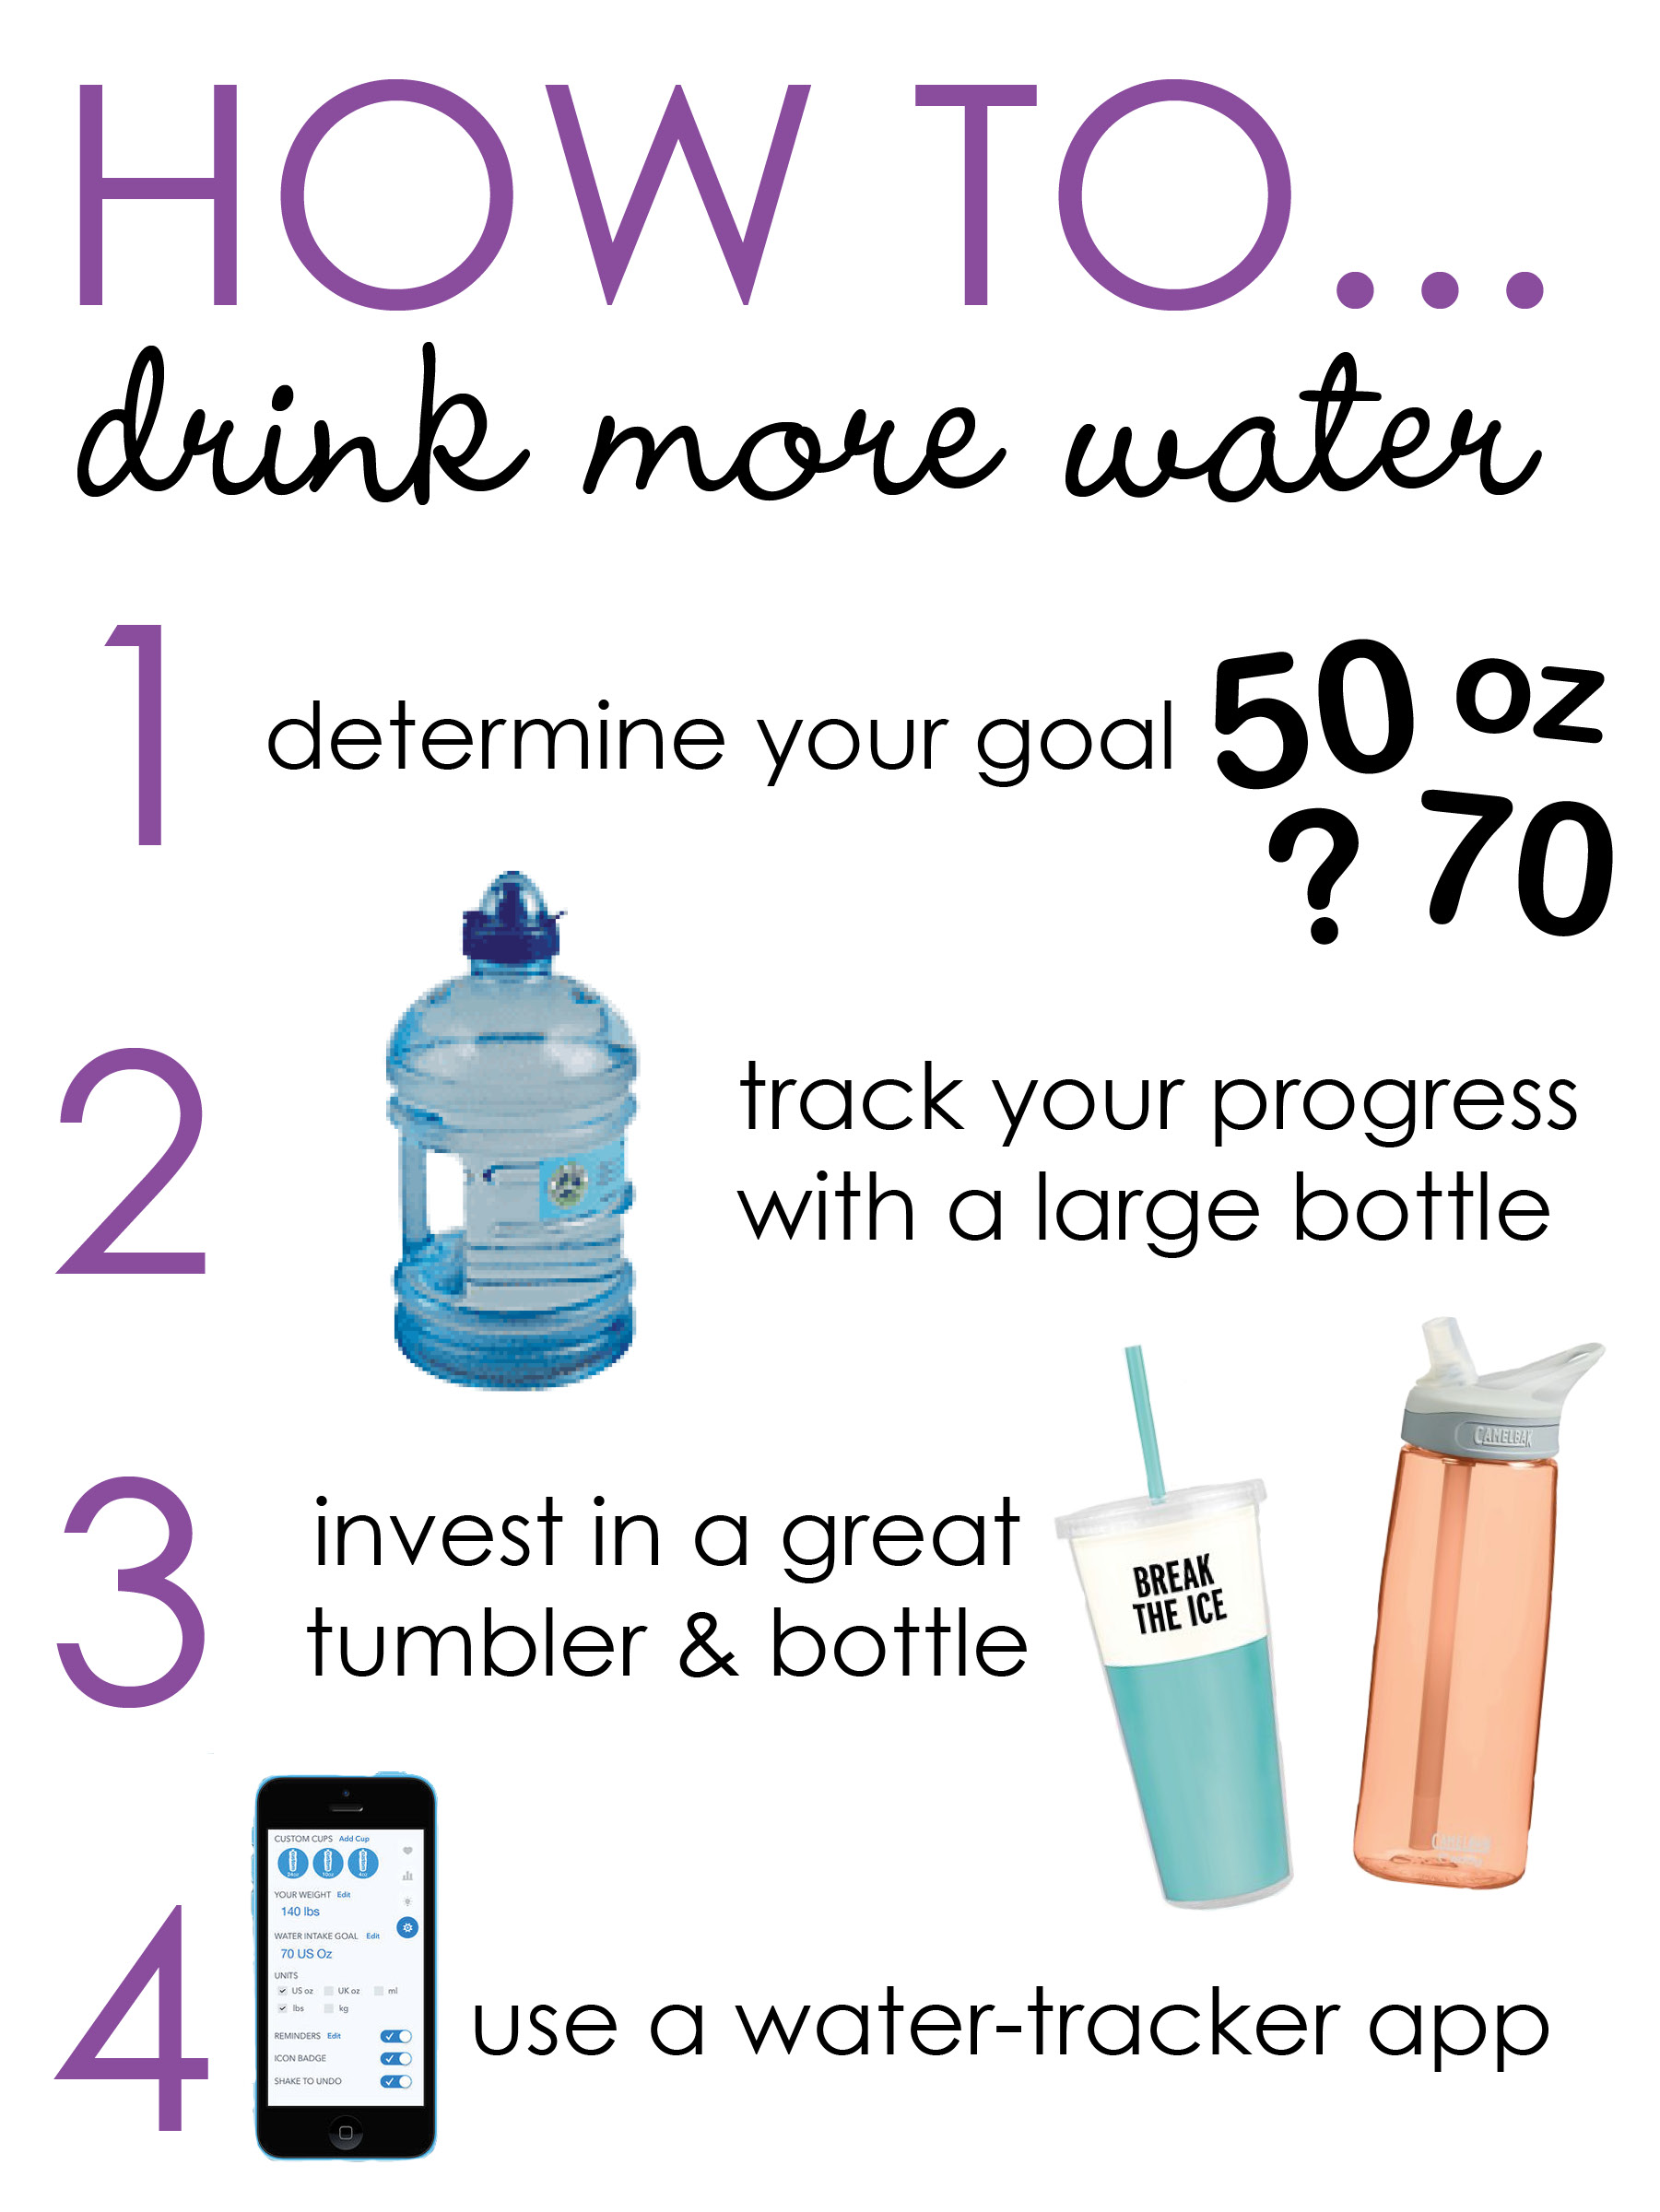 One response to how to drink more water